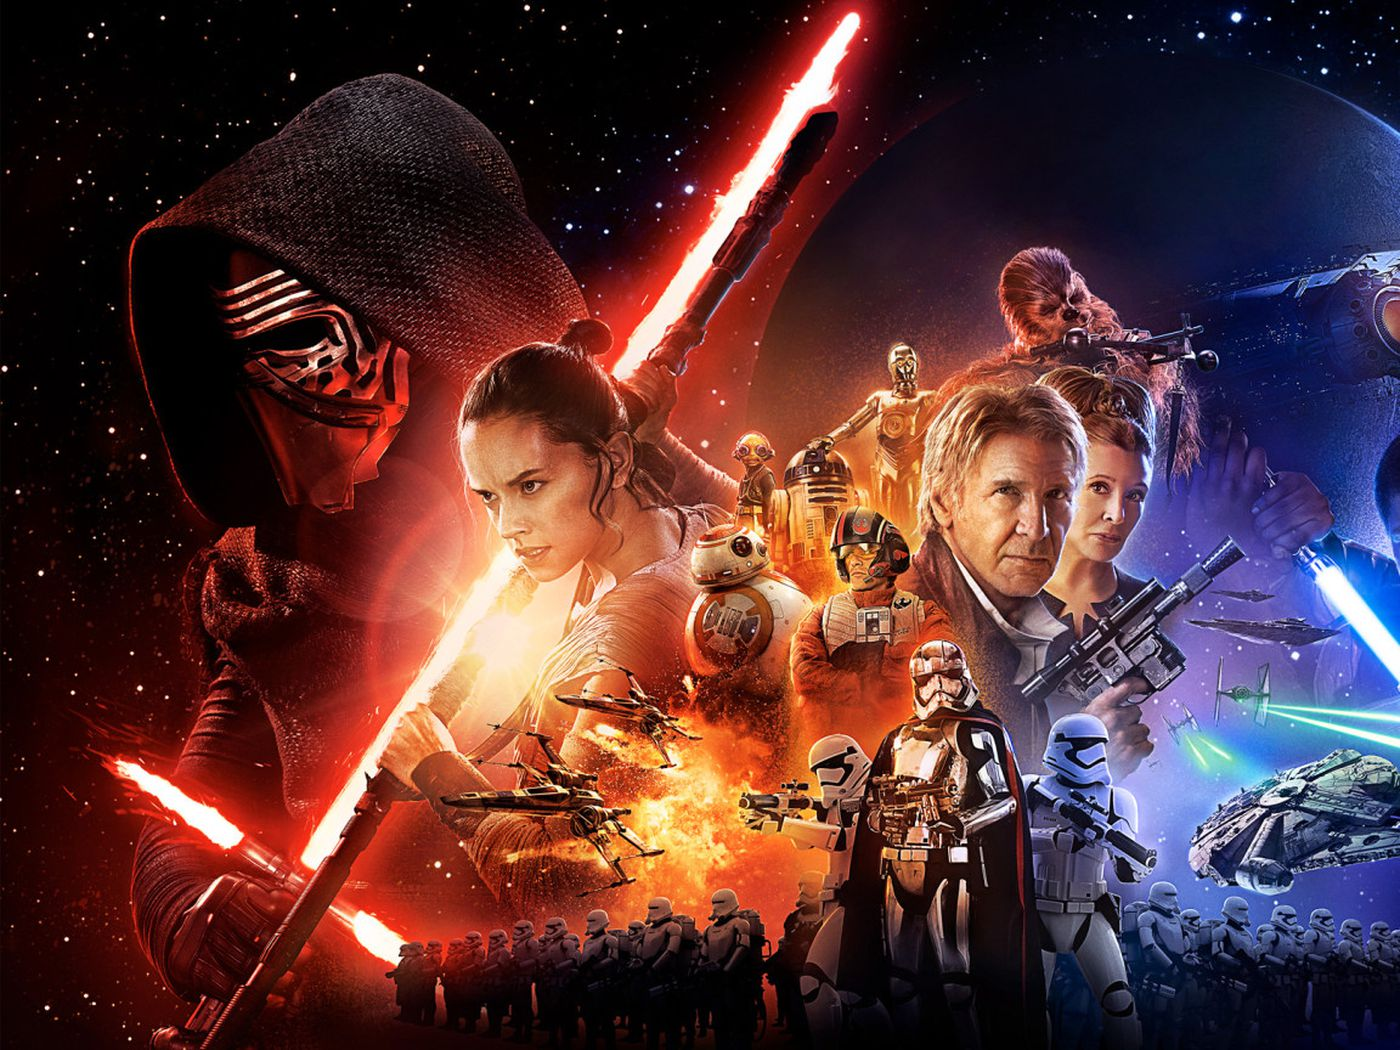 Critics Are Going Too Easy On Star Wars The Force Awakens Vox